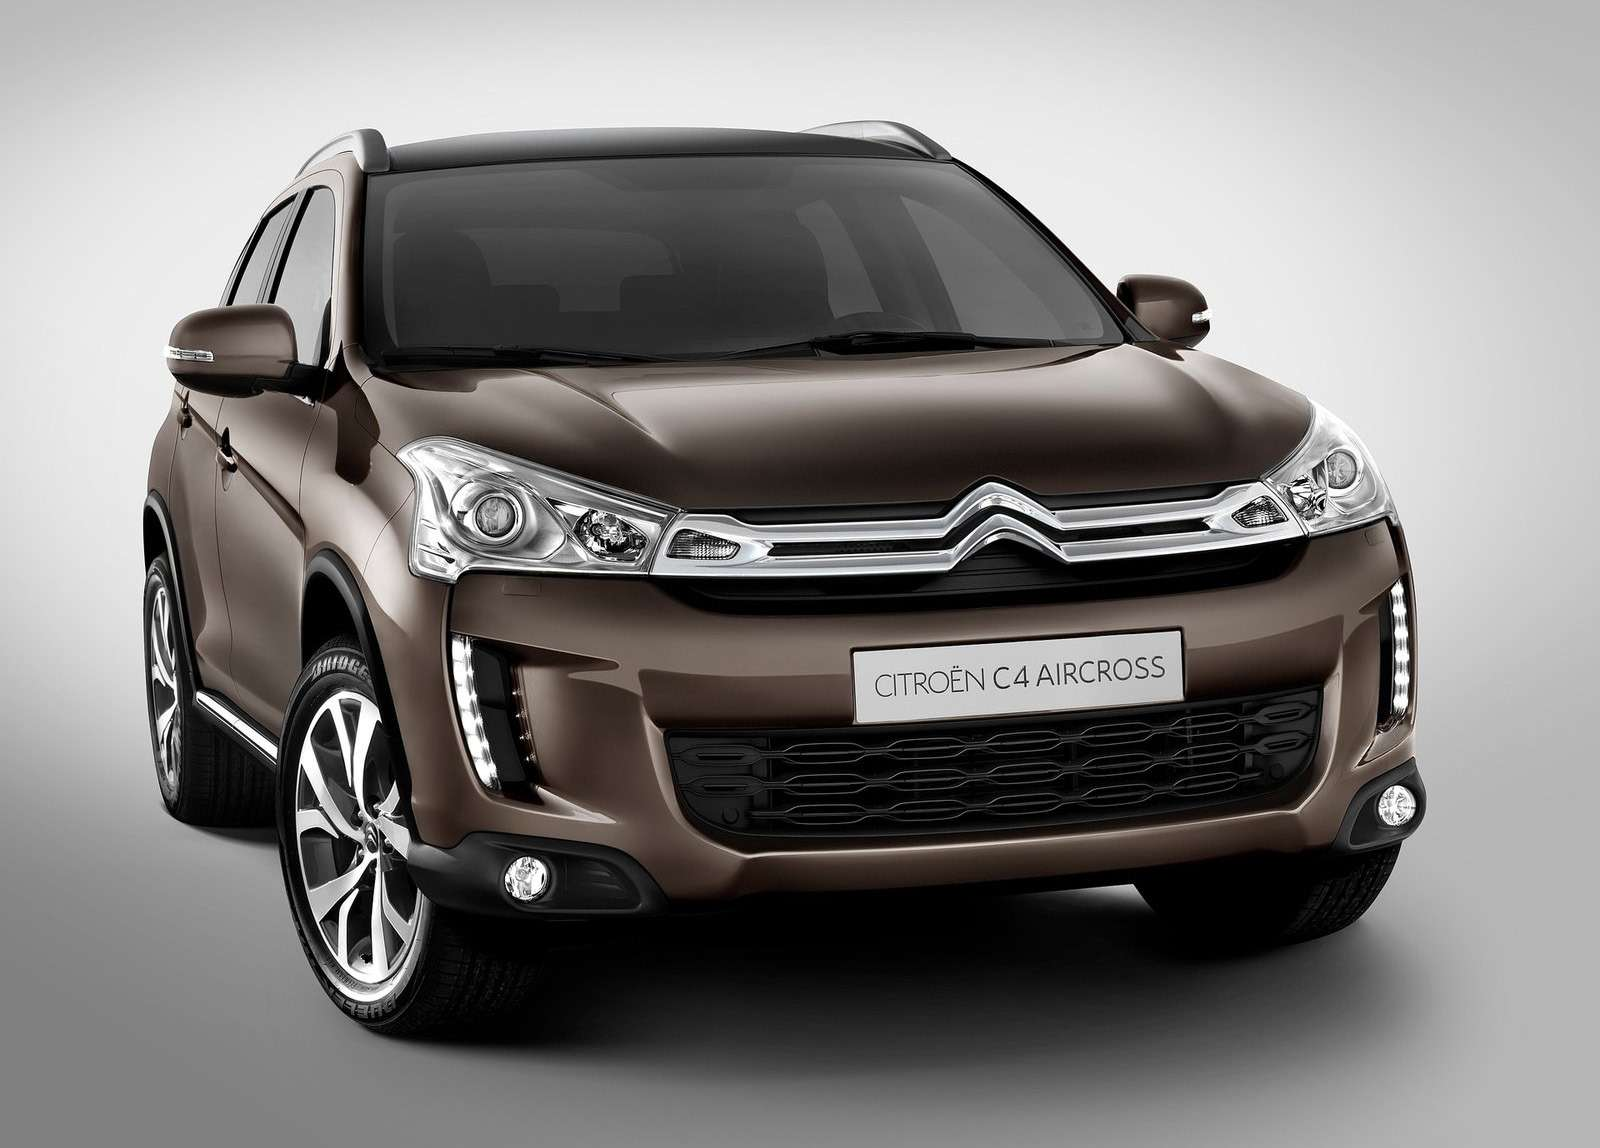 Citroen-C4_Aircross_2013_1600x1200_wallpaper_07